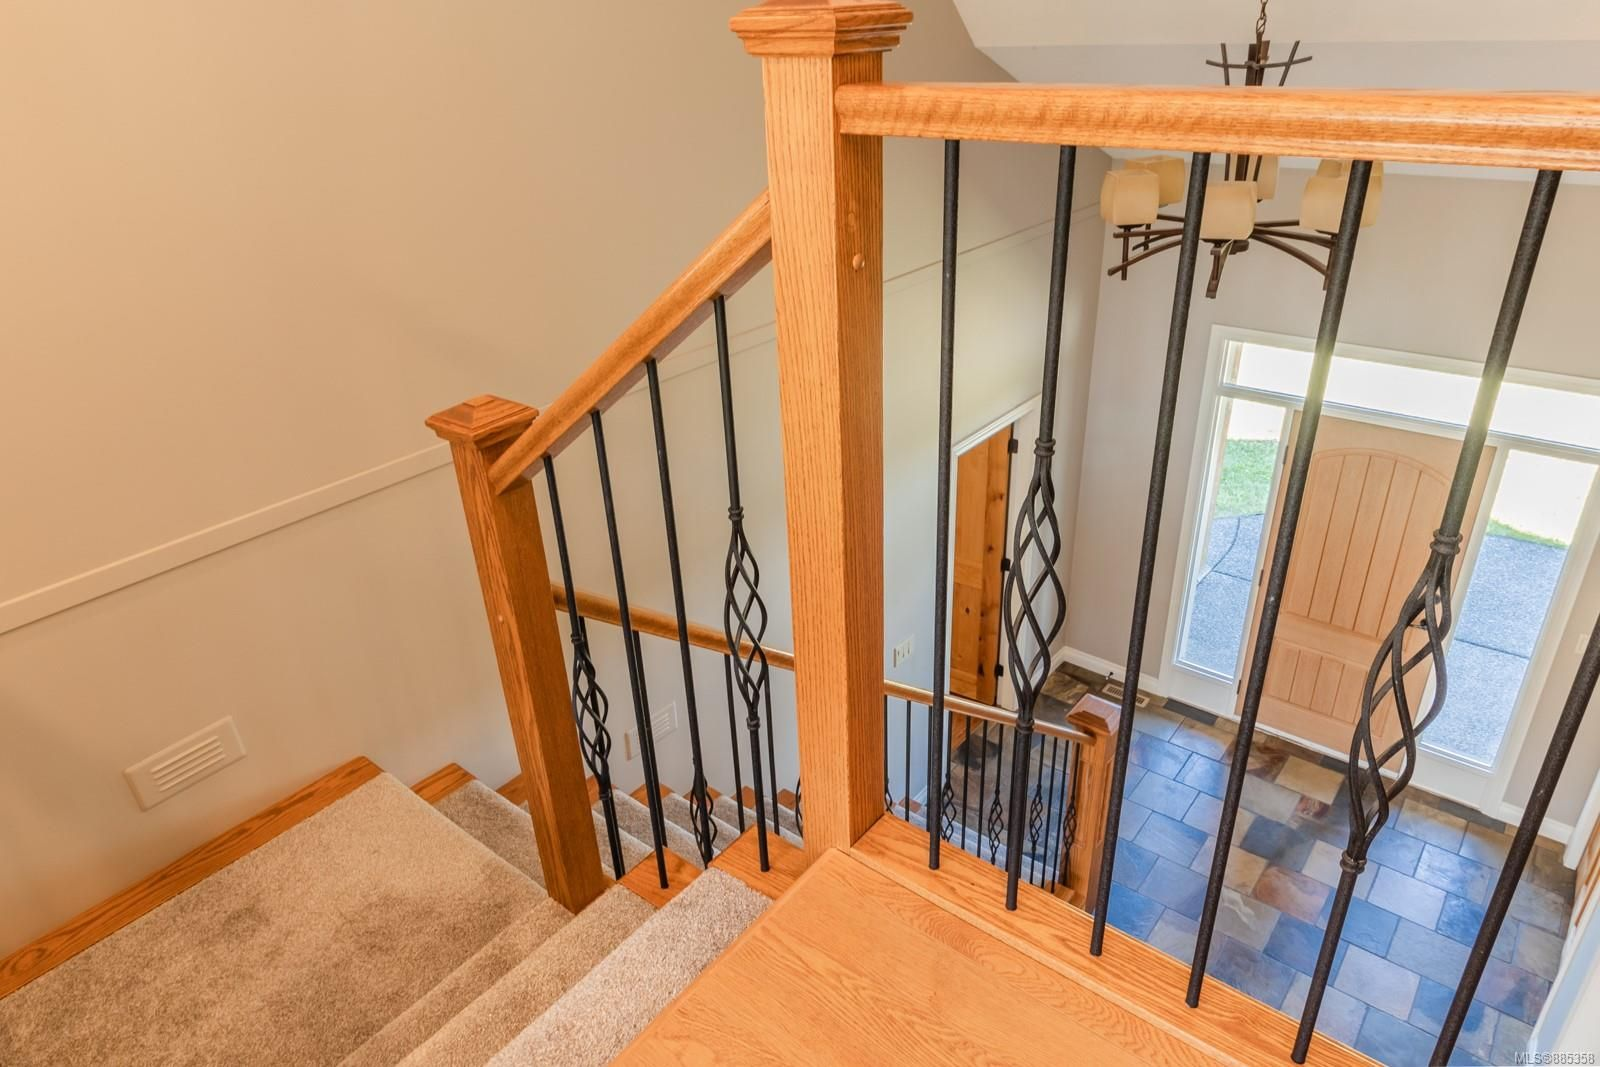 Photo 32: Photos: 2850 Peters Rd in : PQ Qualicum Beach House for sale (Parksville/Qualicum)  : MLS®# 885358